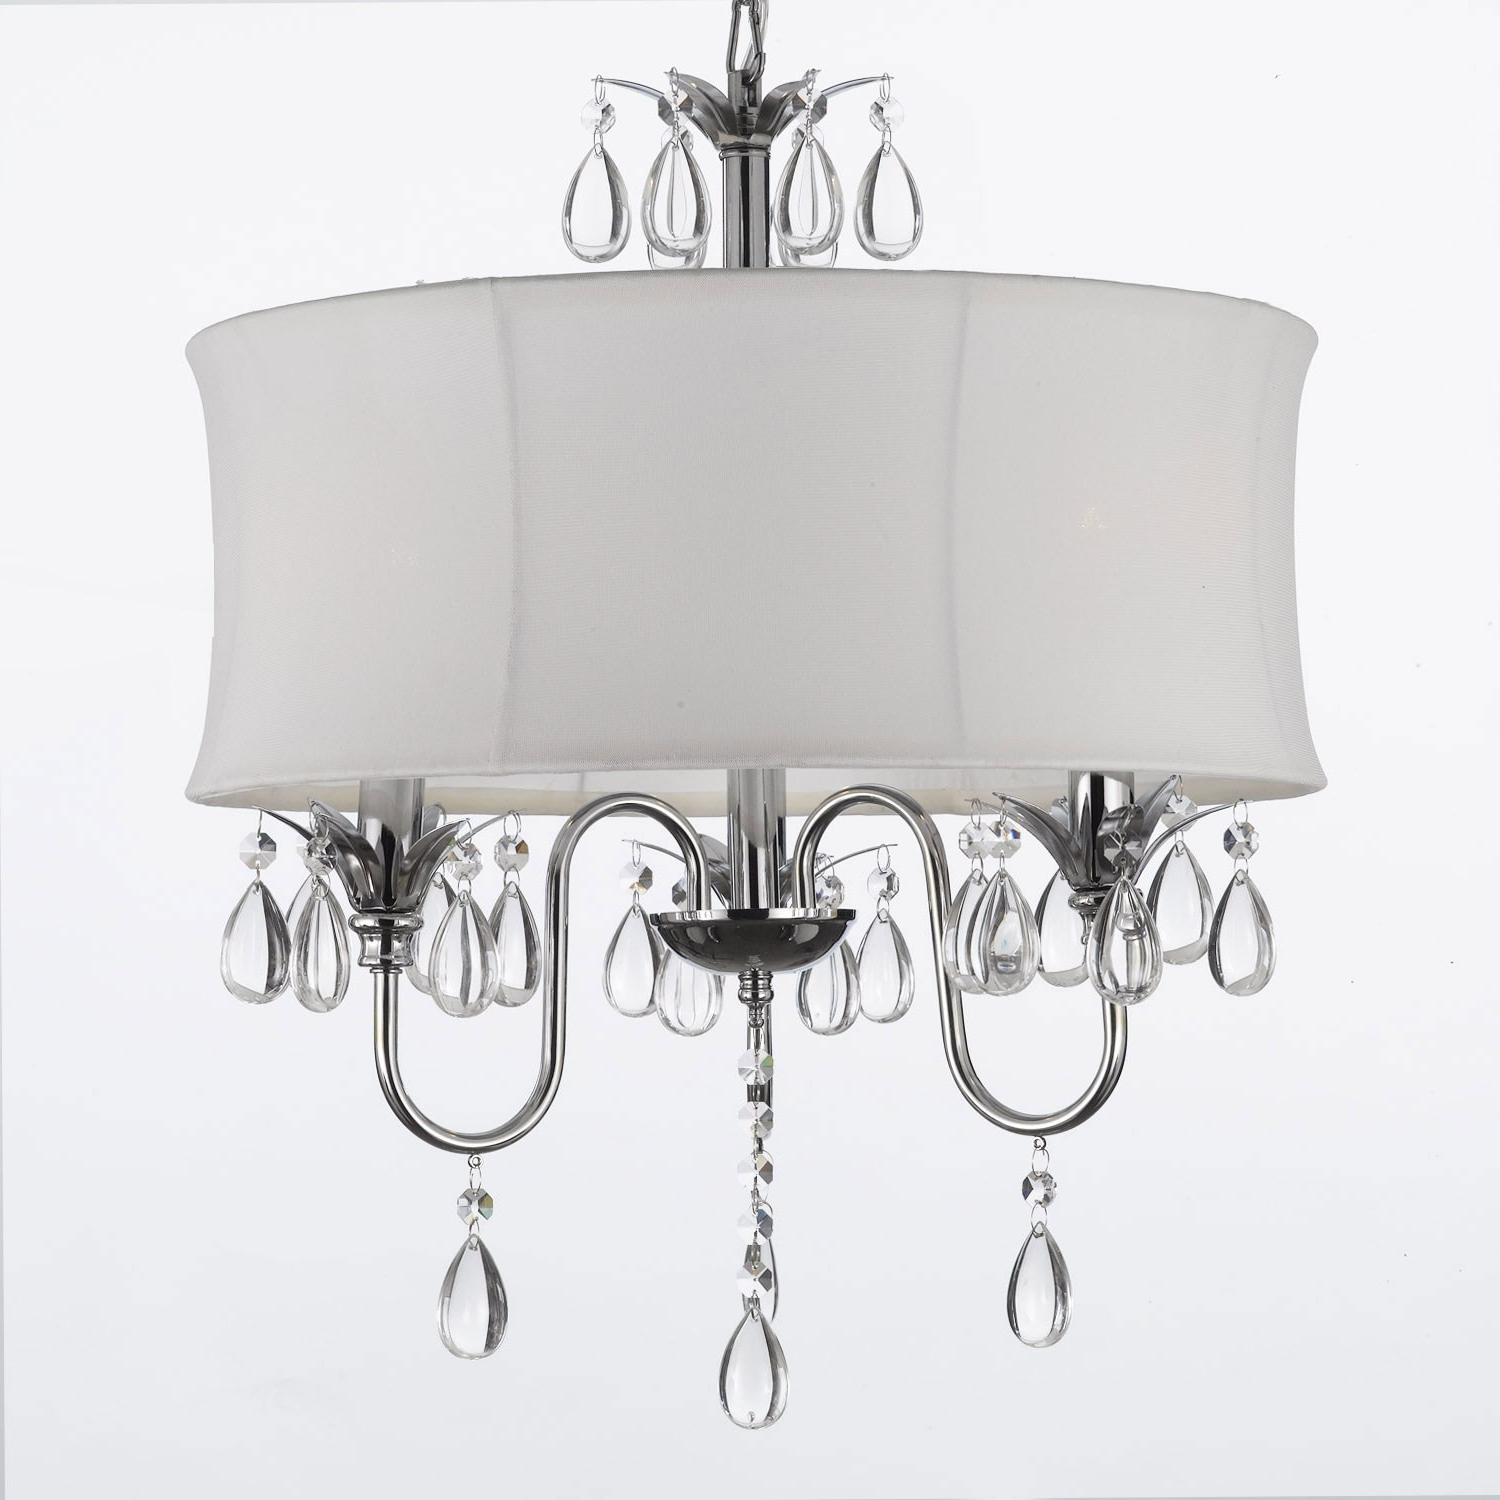 Well Known Chandeliers With Black Shades – Chandelier Showroom With Chandeliers With Black Shades (View 11 of 15)